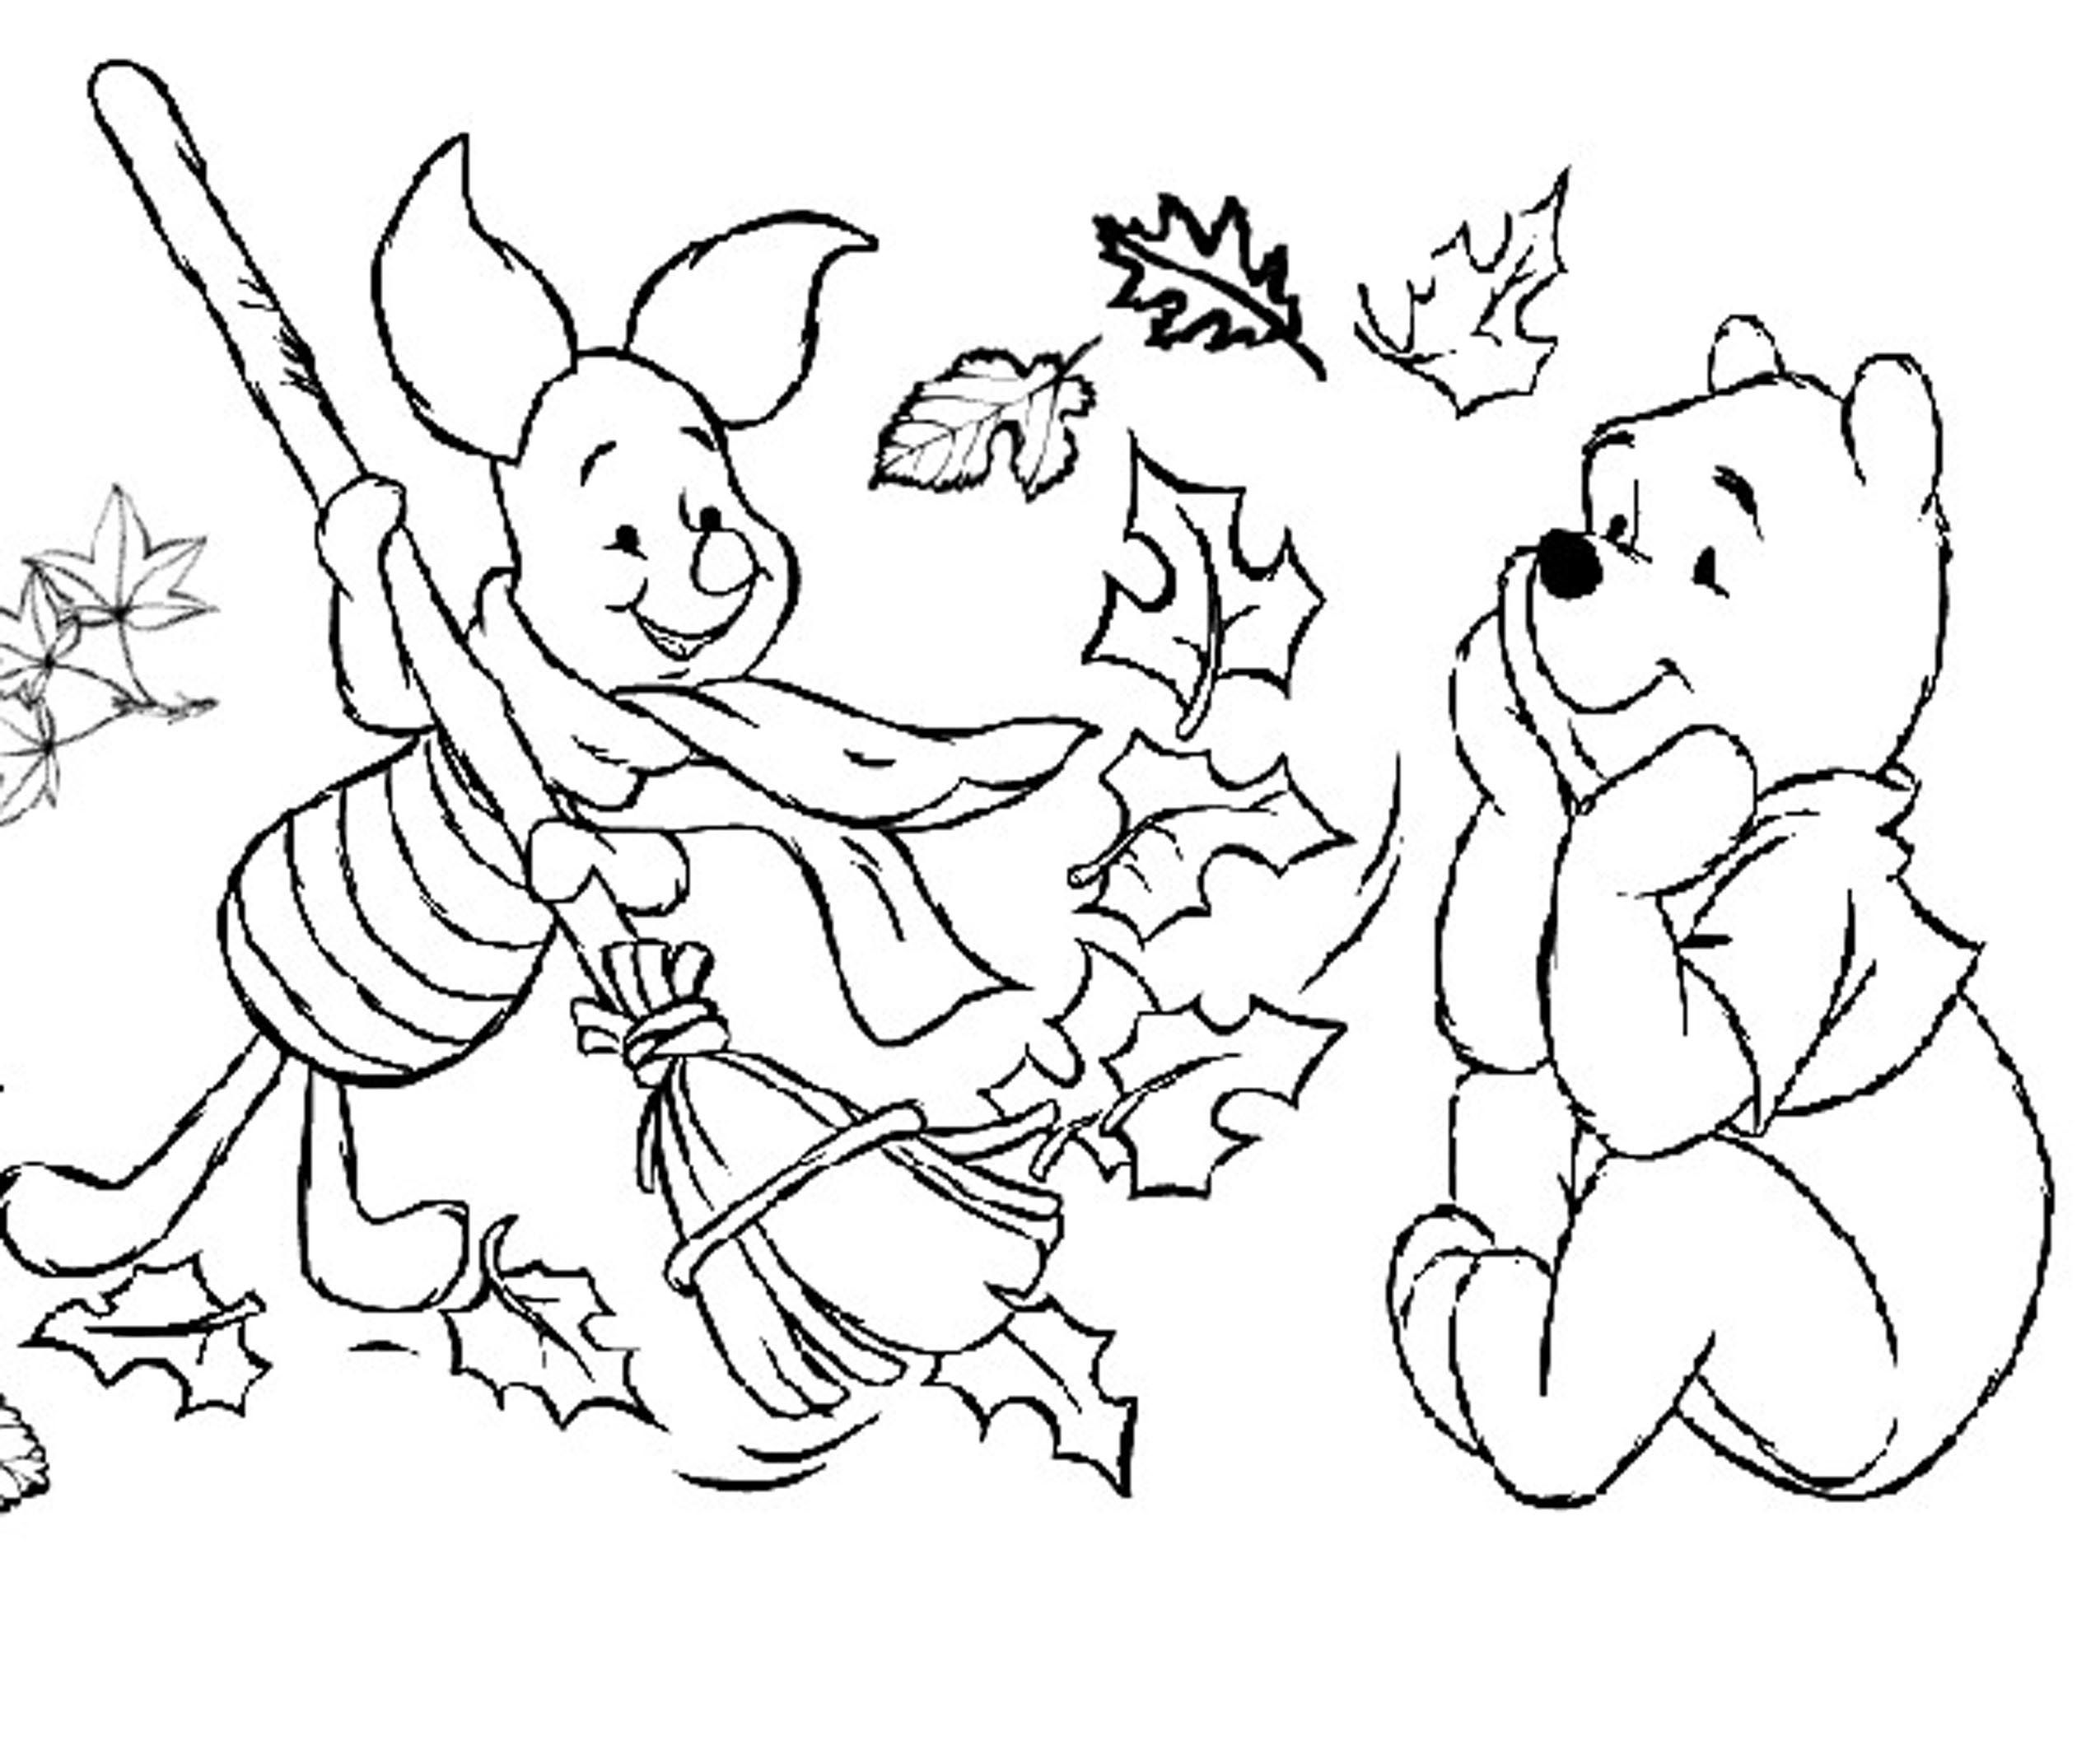 Autumn Coloring Pages For Preschoolers Coloring Home Free Printable Fall Coloring Pages F Pokemon Coloring Pages Princess Coloring Pages Bear Coloring Pages